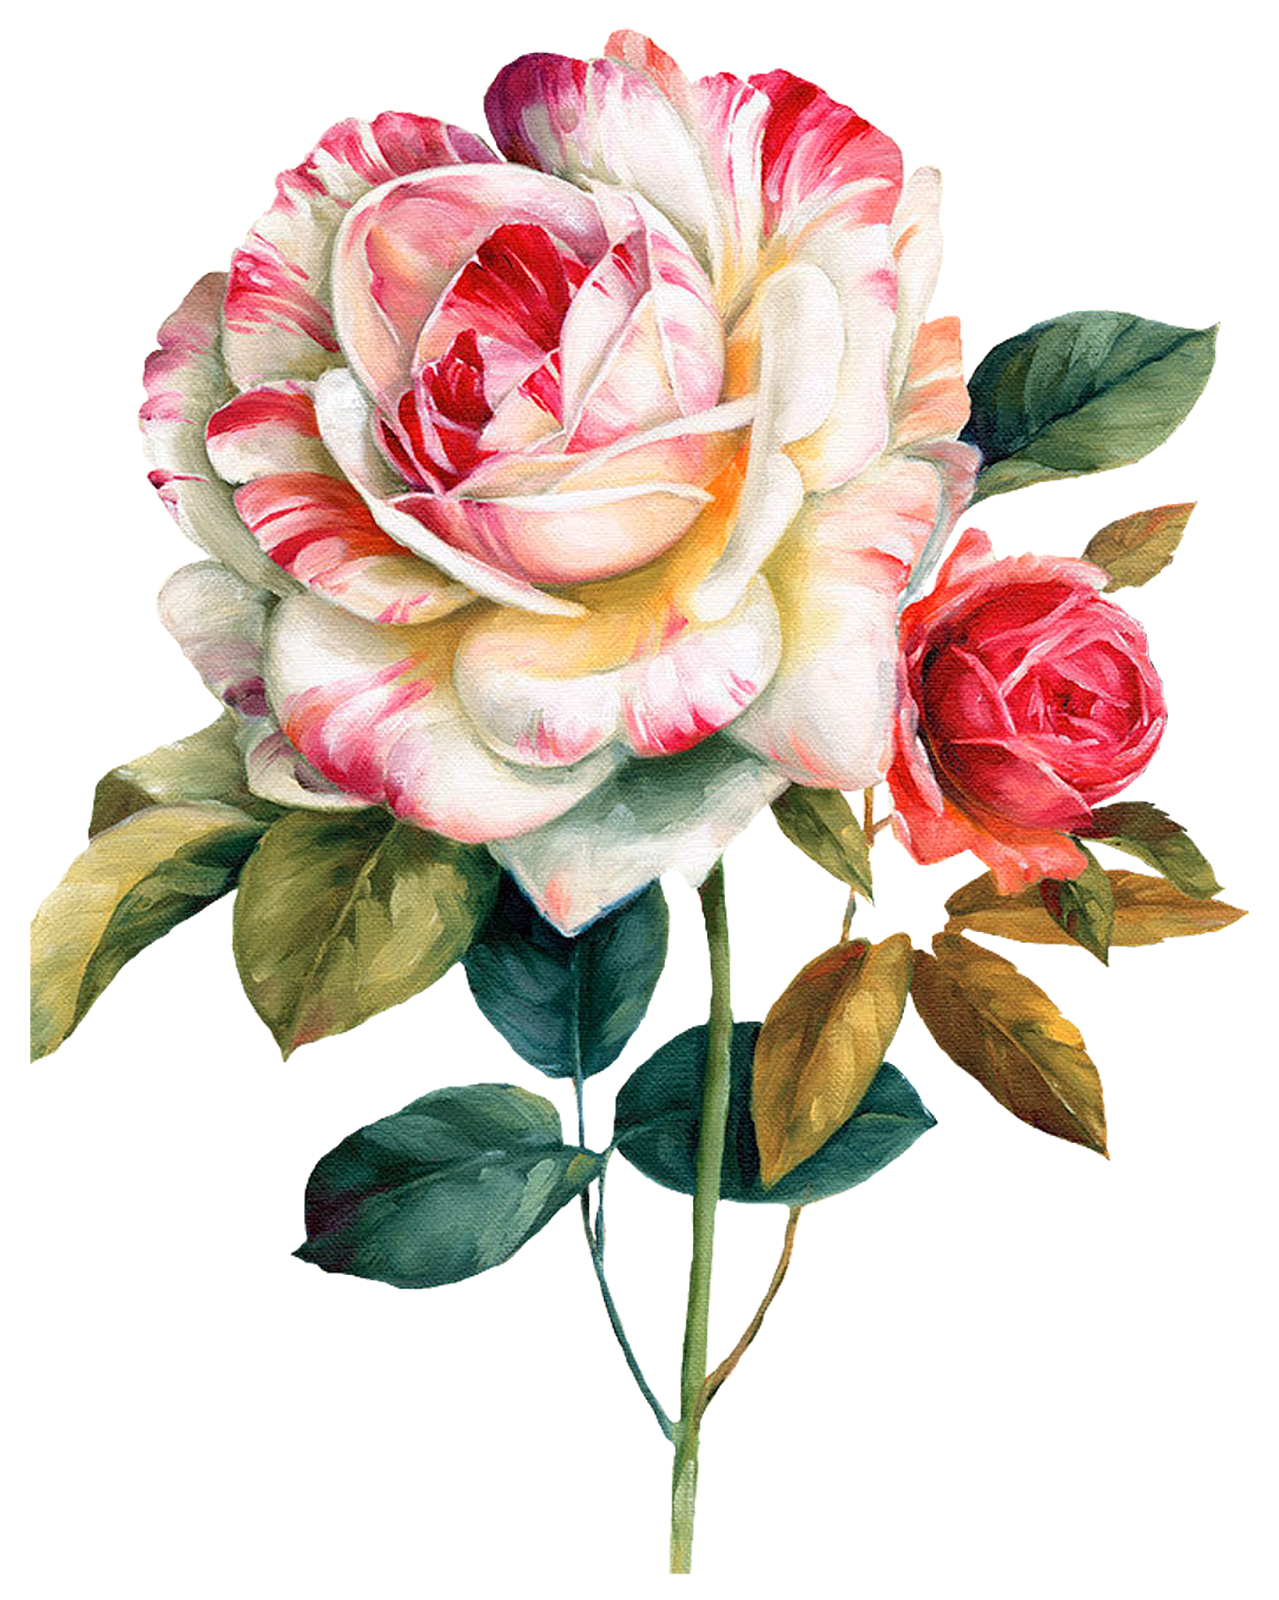 Pink And Red Roses Flower Watercolor Painting Floral Design Oil